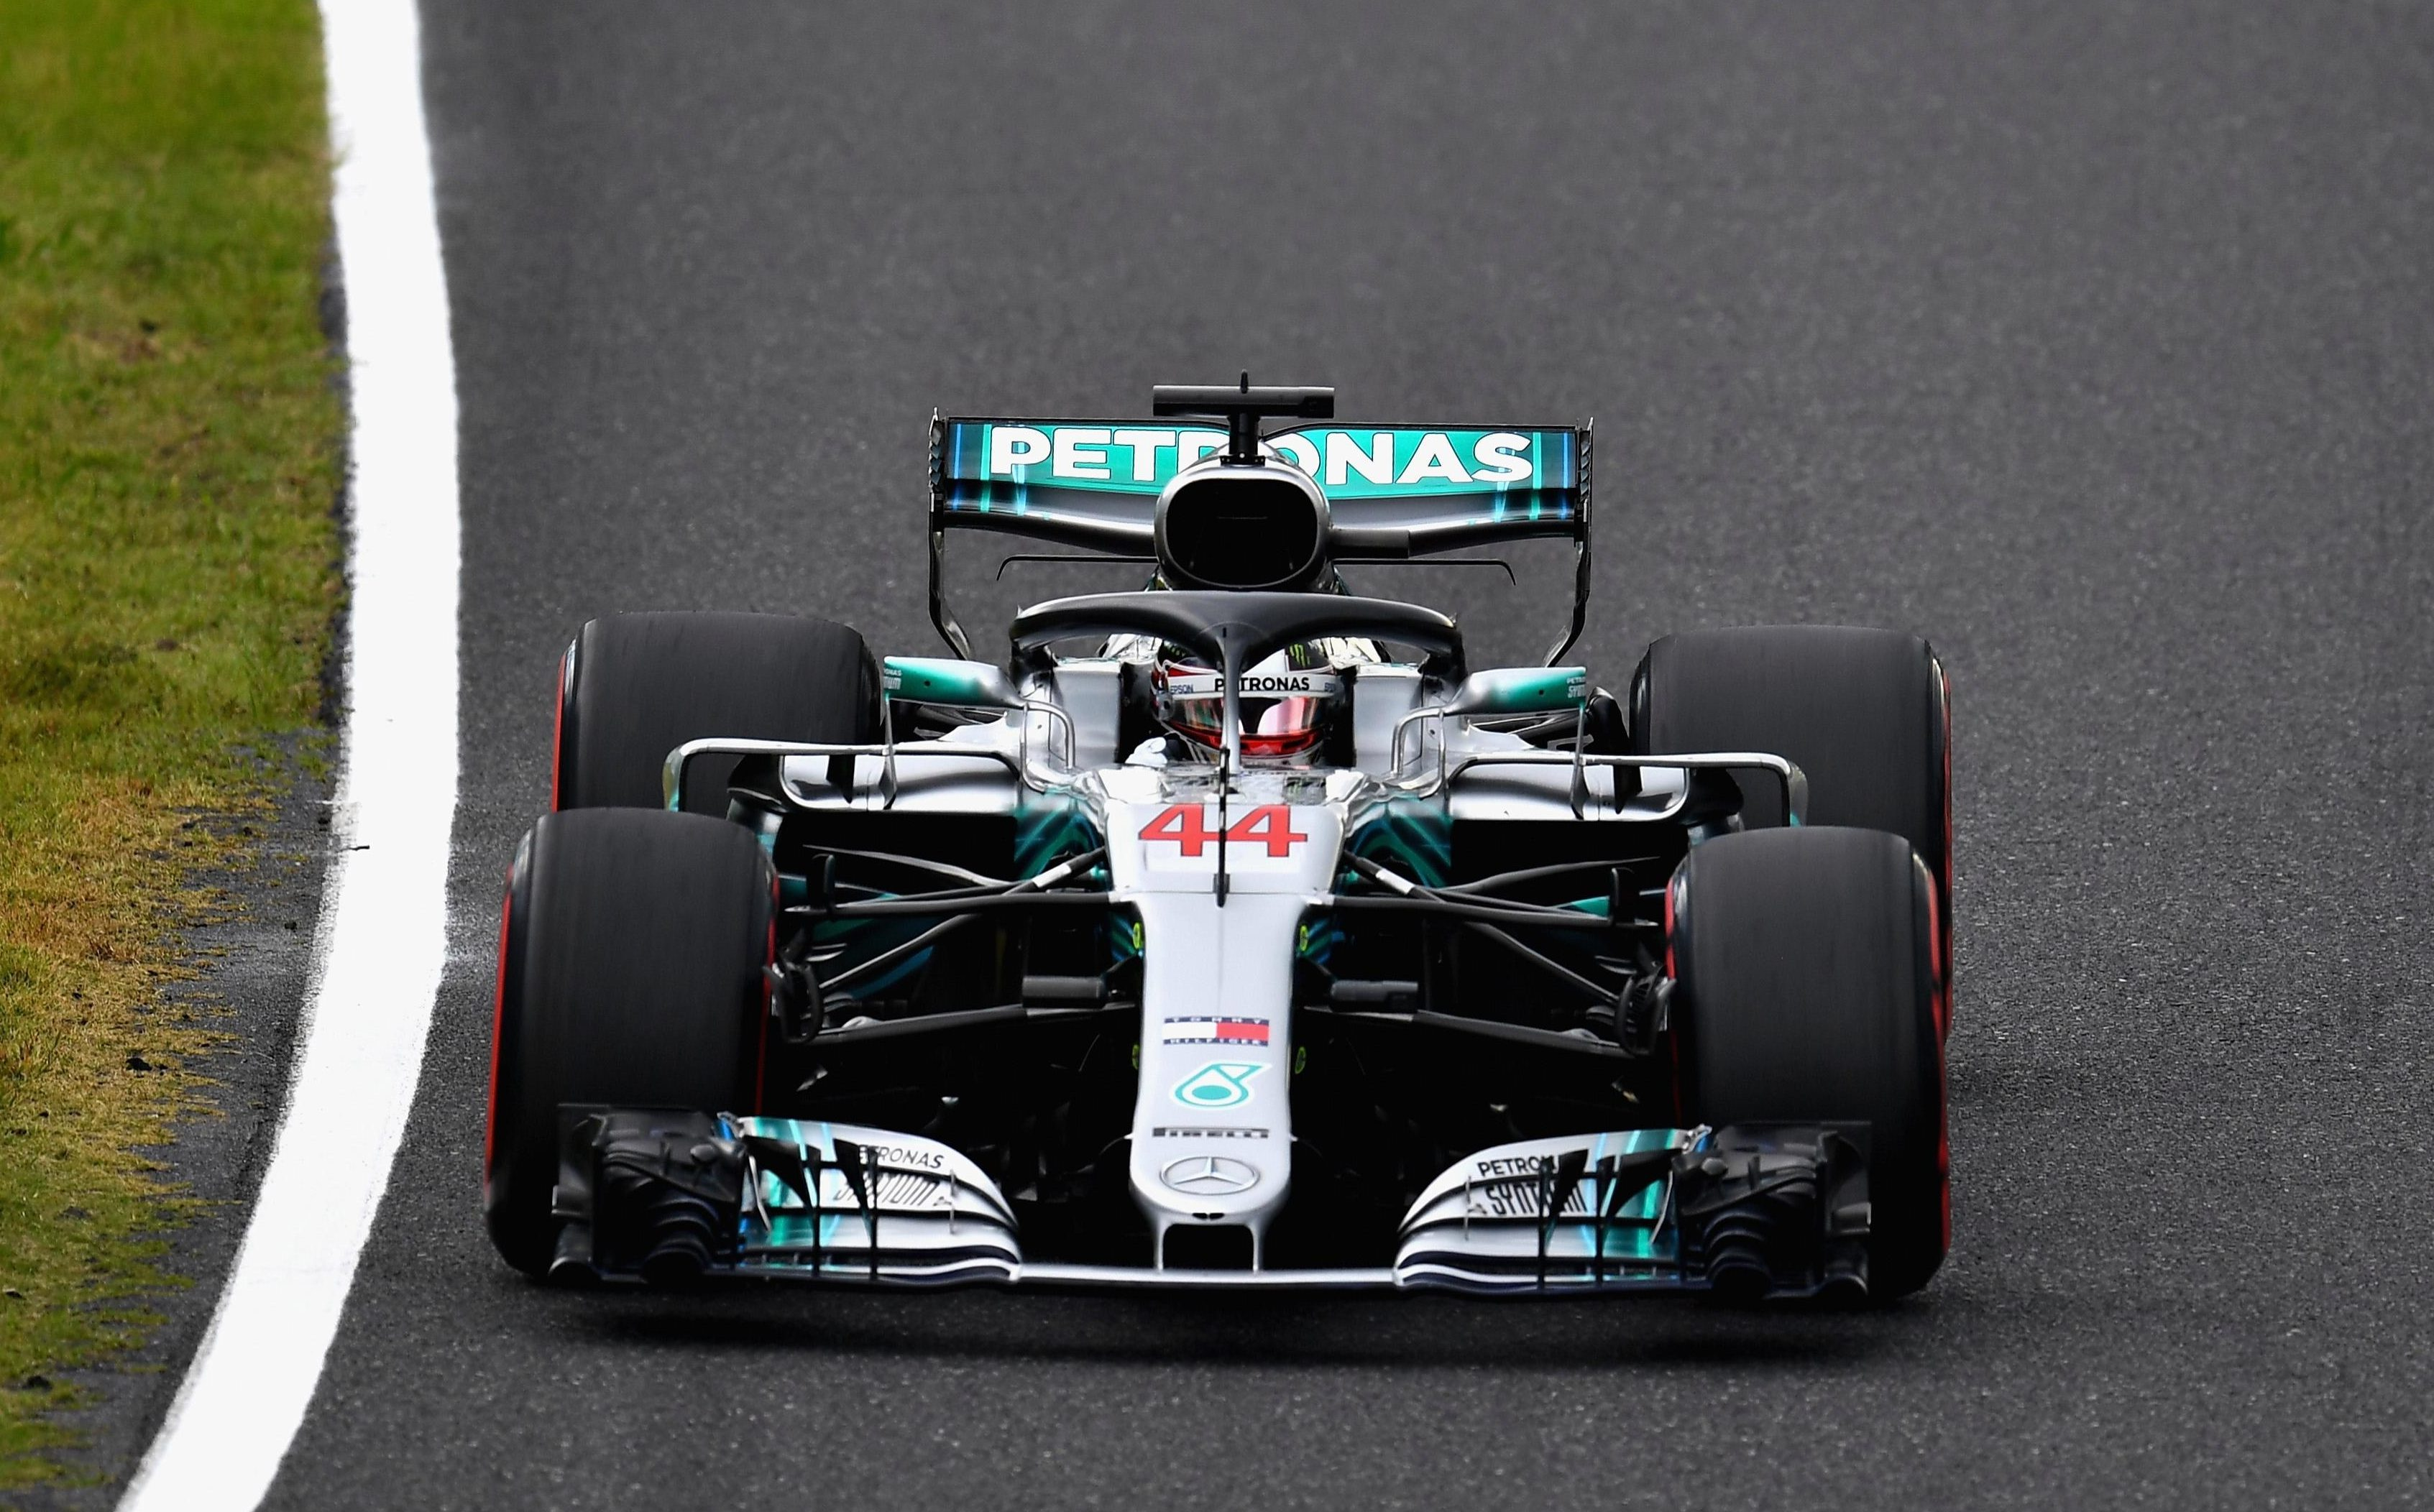 Lewis Hamilton qualified on pole for the Japan GP